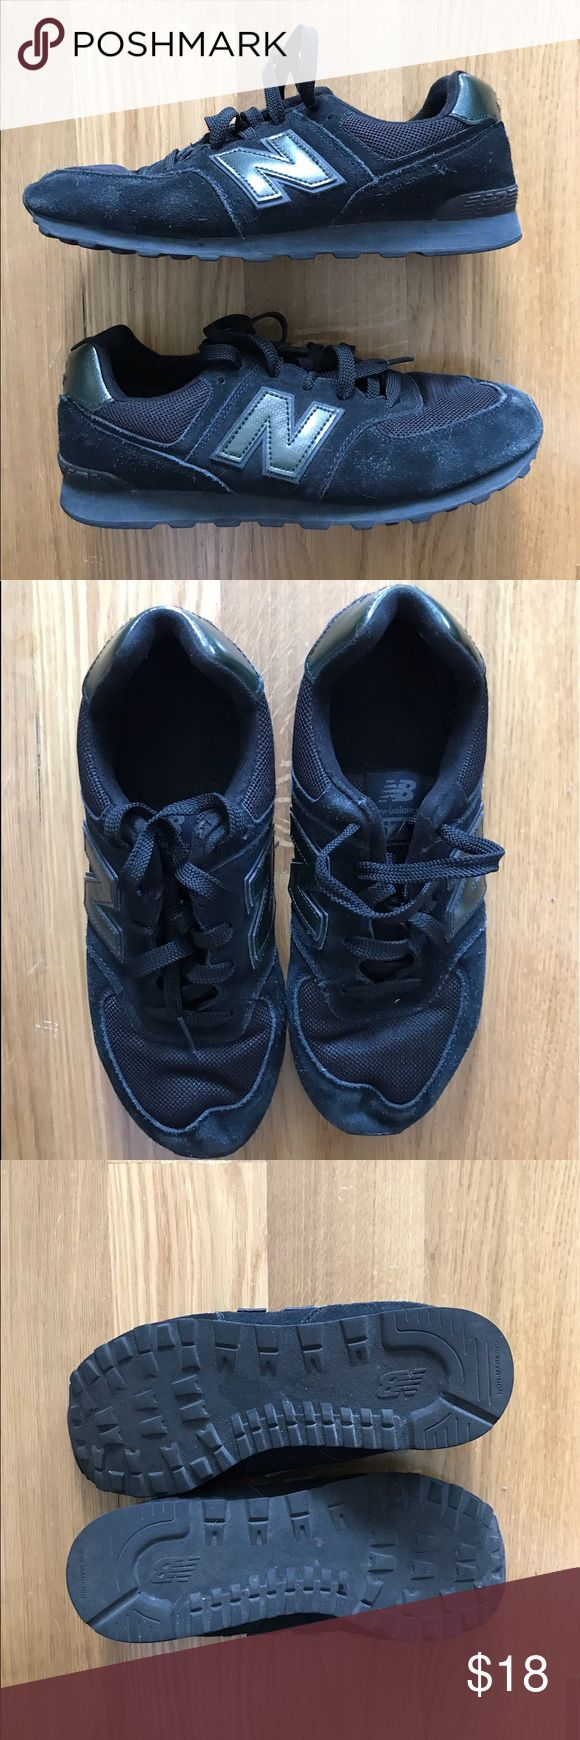 Geek Sneak New Balance All Black New Balance New Balance Shoes Sneakers